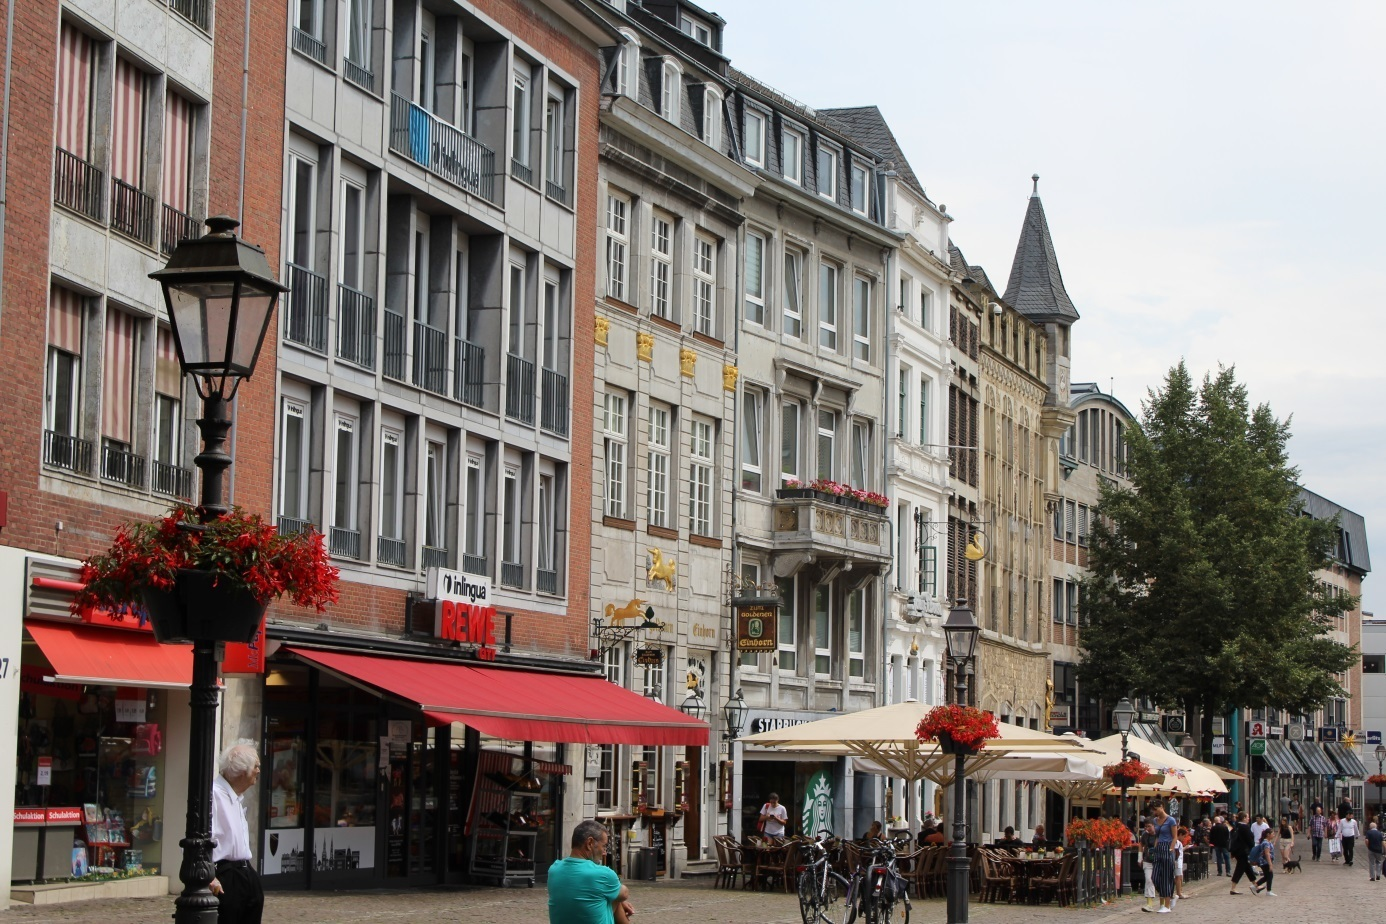 Houses in the center of Aachen